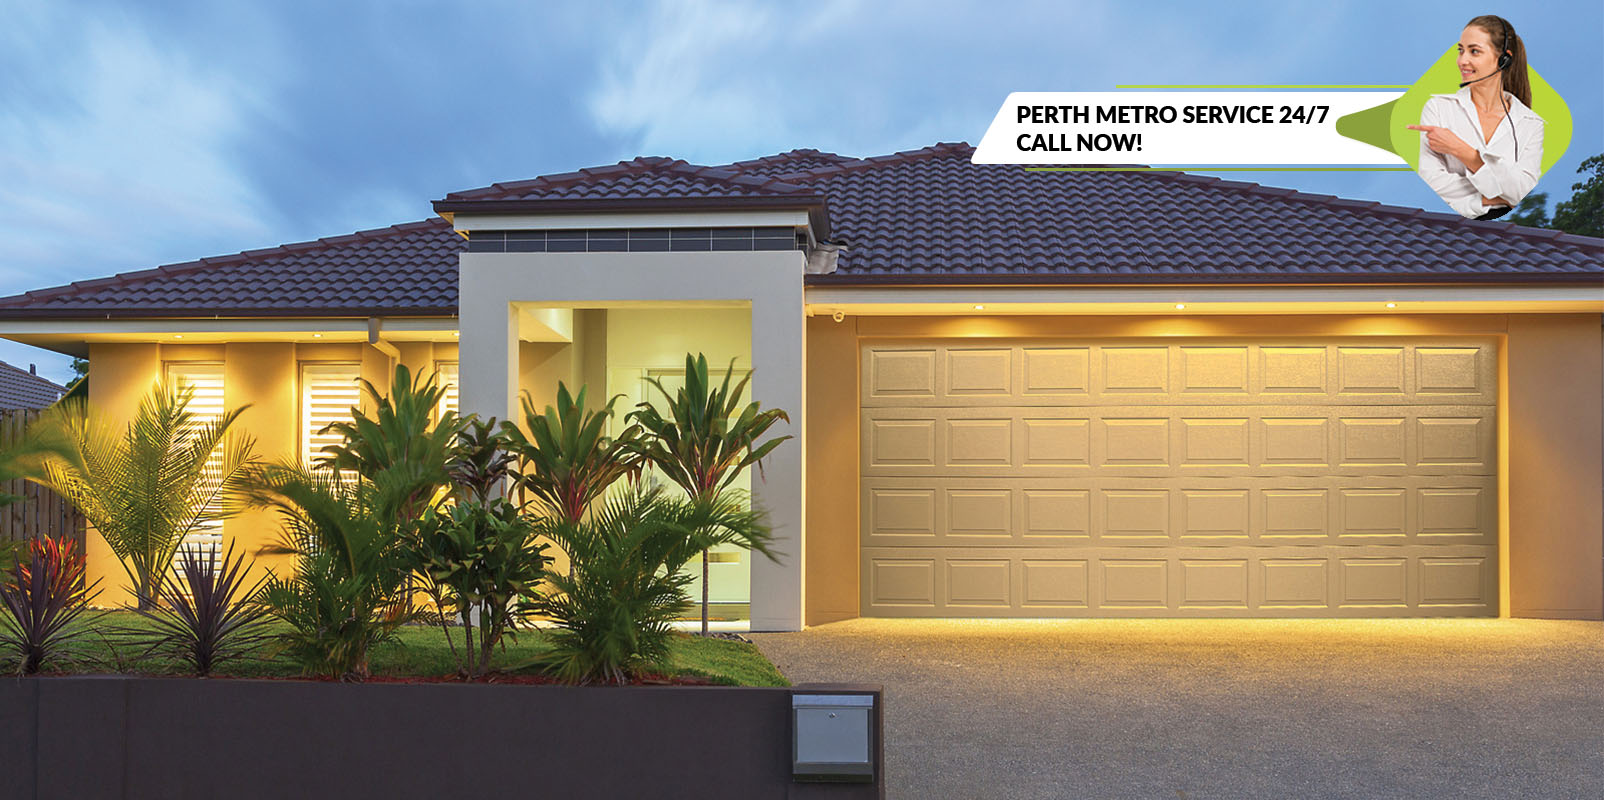 The Garage Door Shop is your trusted and reliable garage doors services whether it's for a residential or business in Perth, Western Australia.